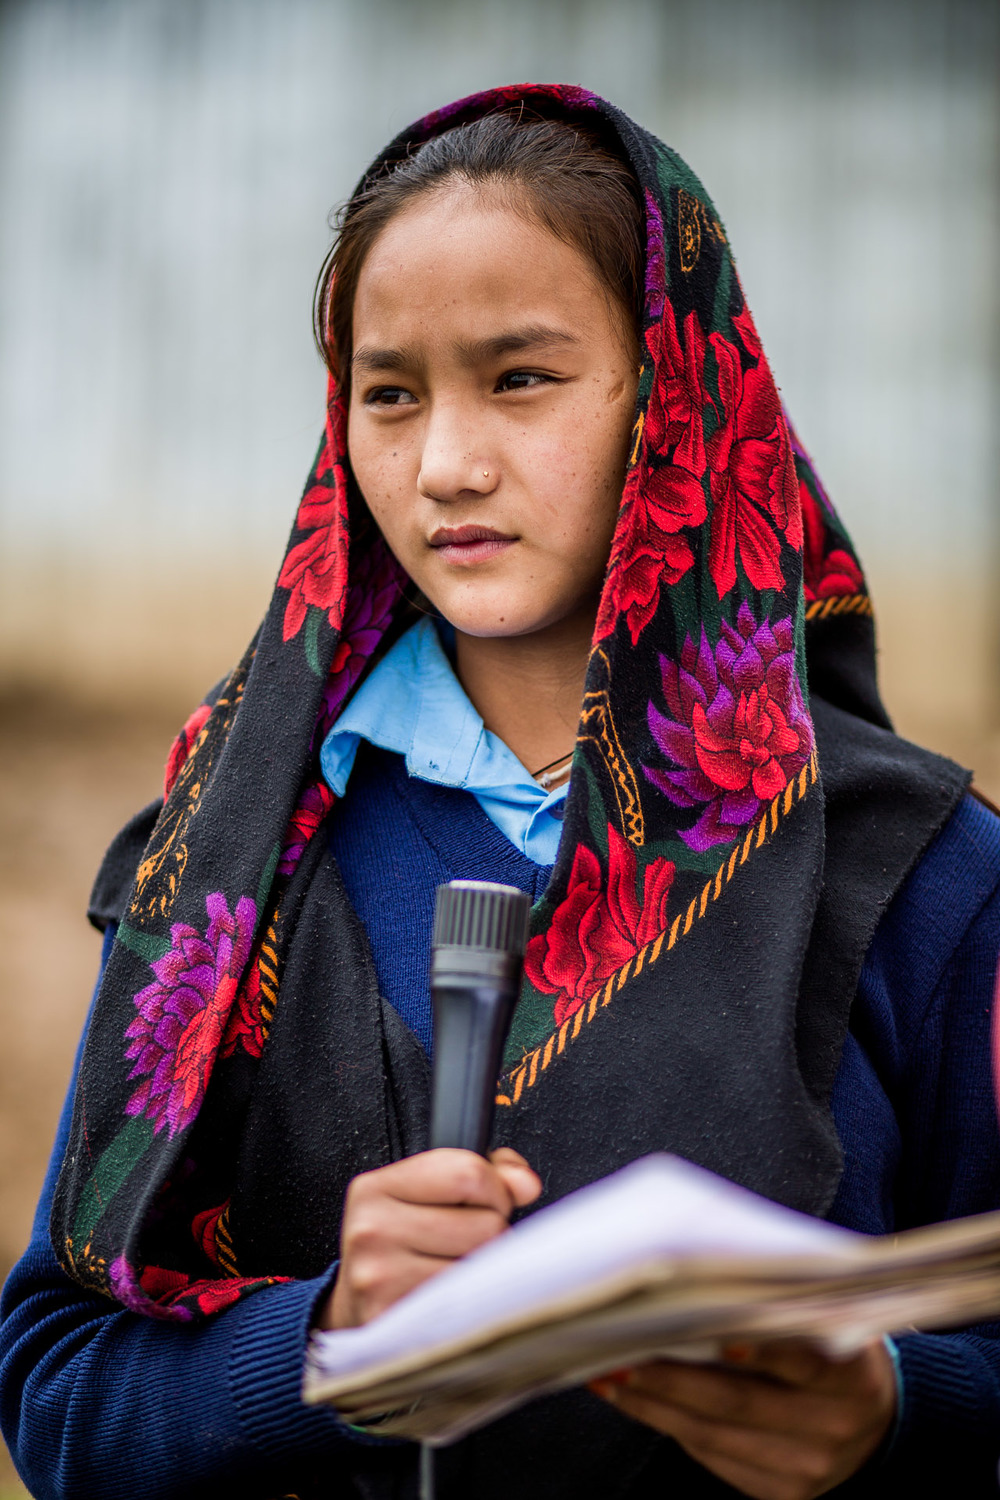 Girl reading her schoolwork as part of the morning assembly to the other 200 students.